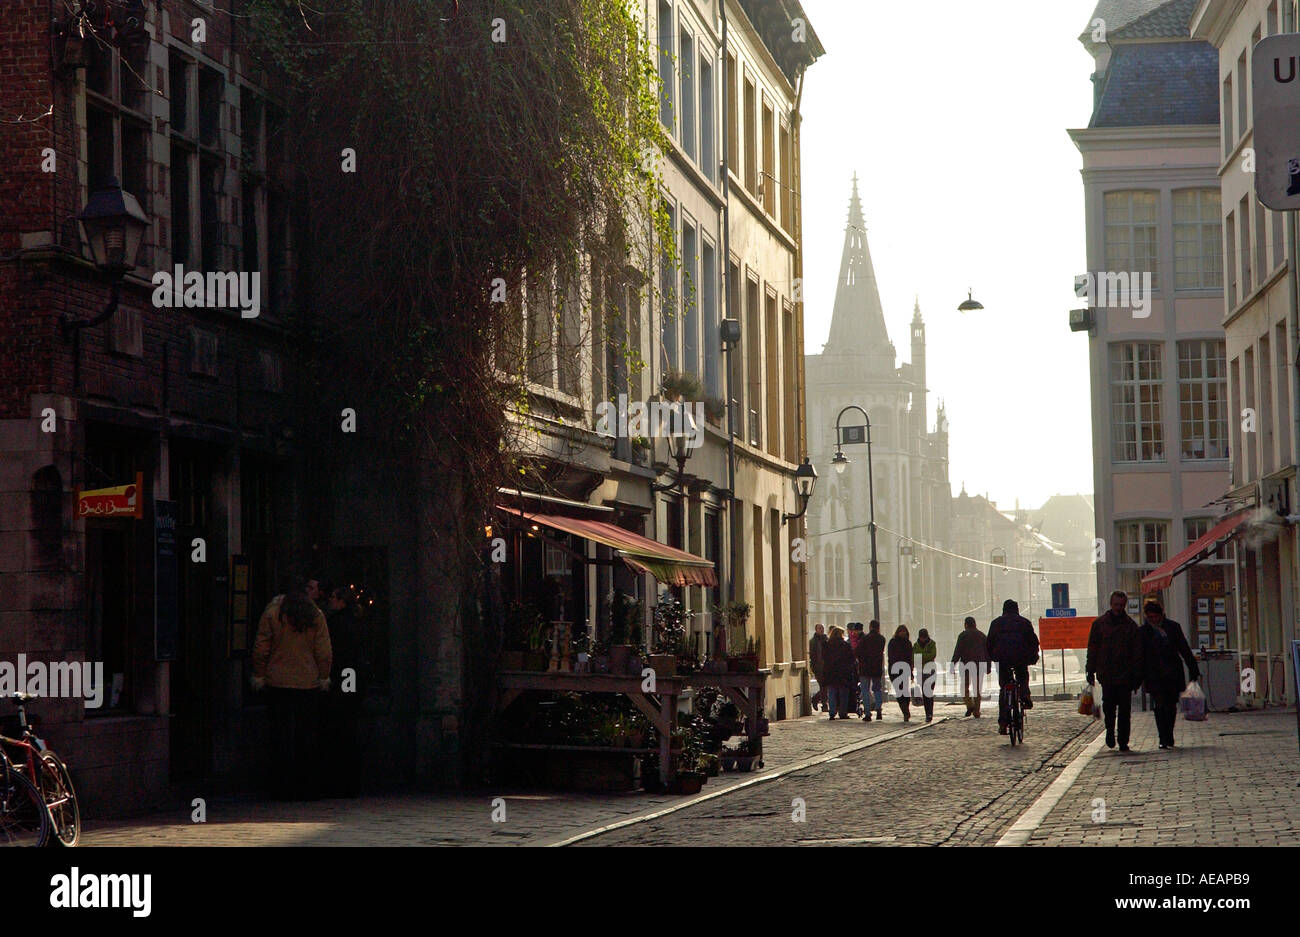 A street in Ghent Belgium Stock Photo